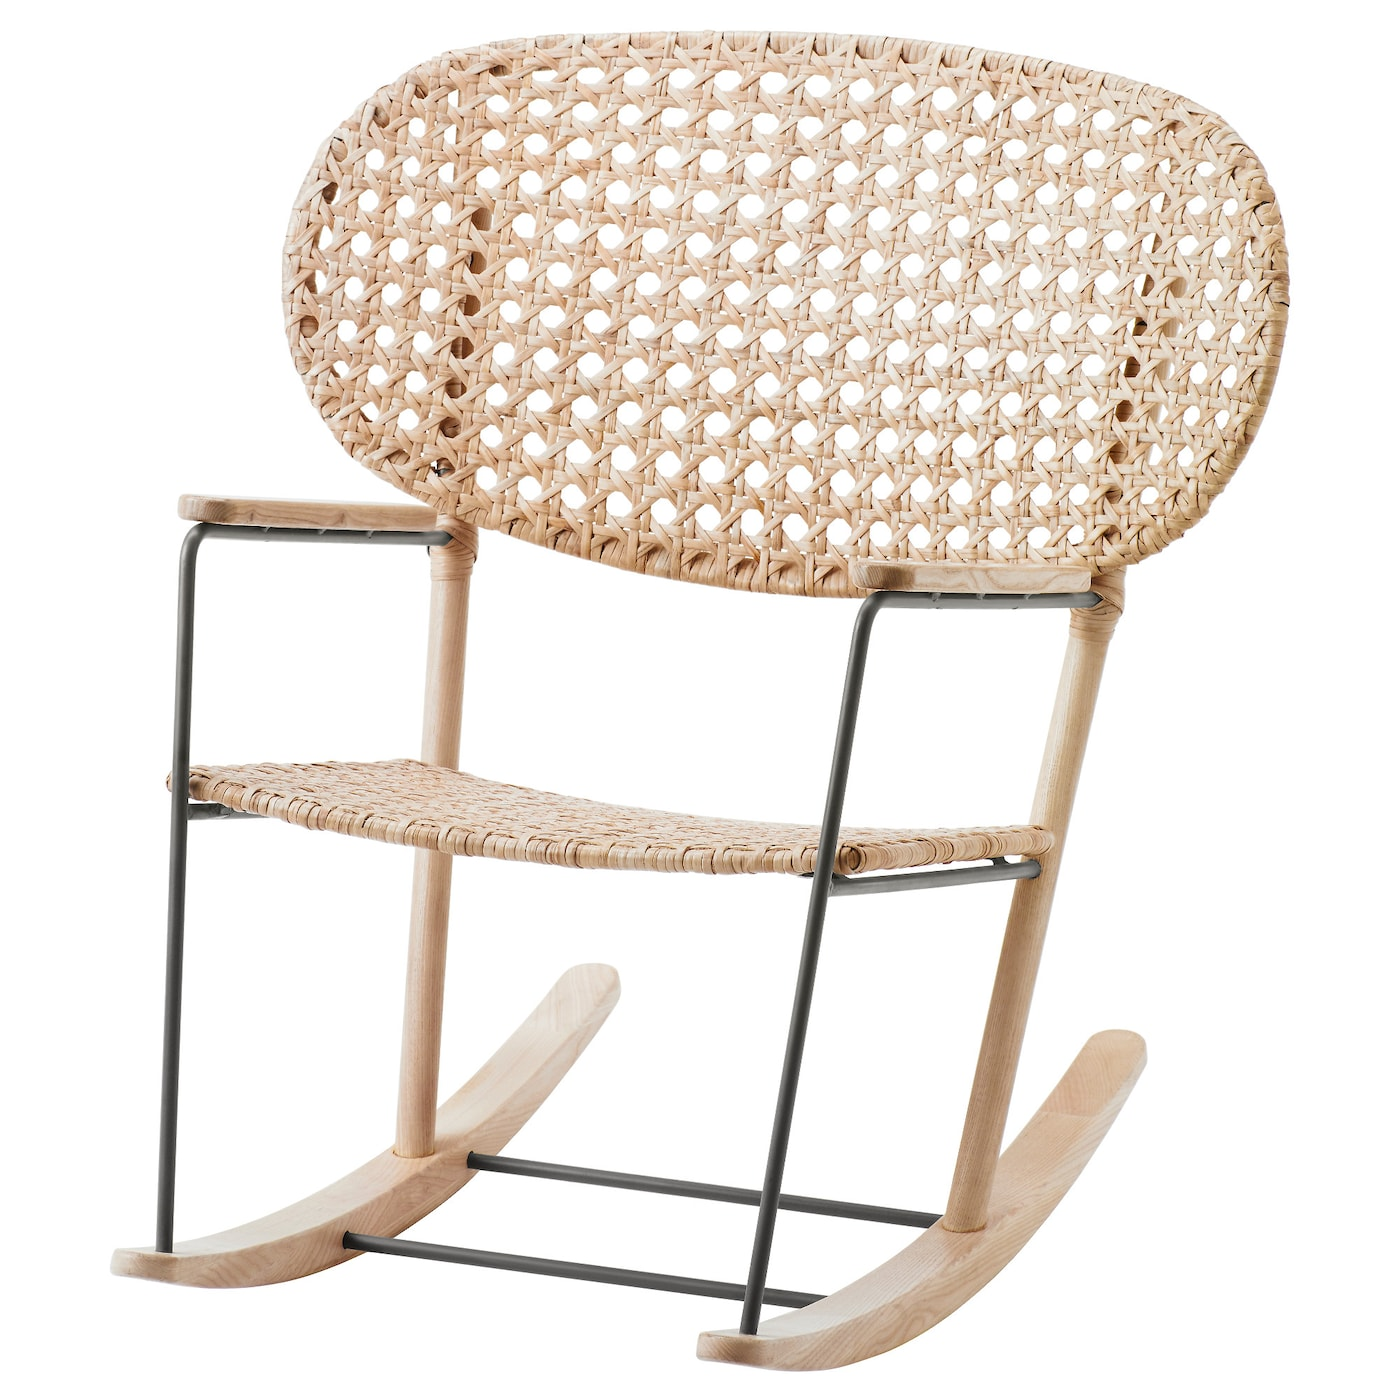 IKEA GRÖNADAL Rocking Chair Made From Rattan And Ash, Natural Materials  That Age With